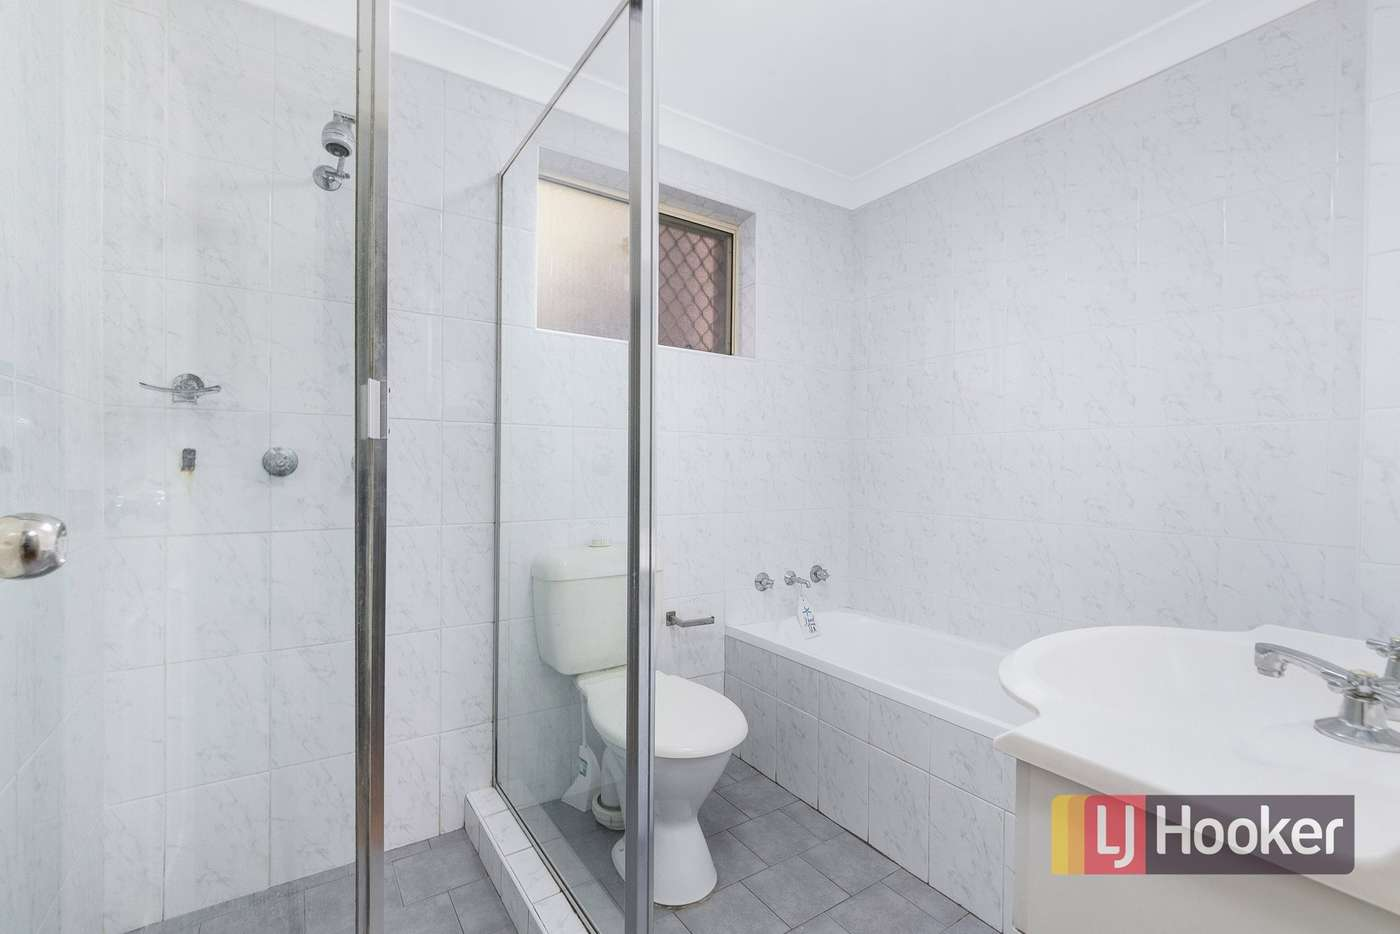 Fifth view of Homely apartment listing, 4a/88-98 Marsden St, Parramatta NSW 2150